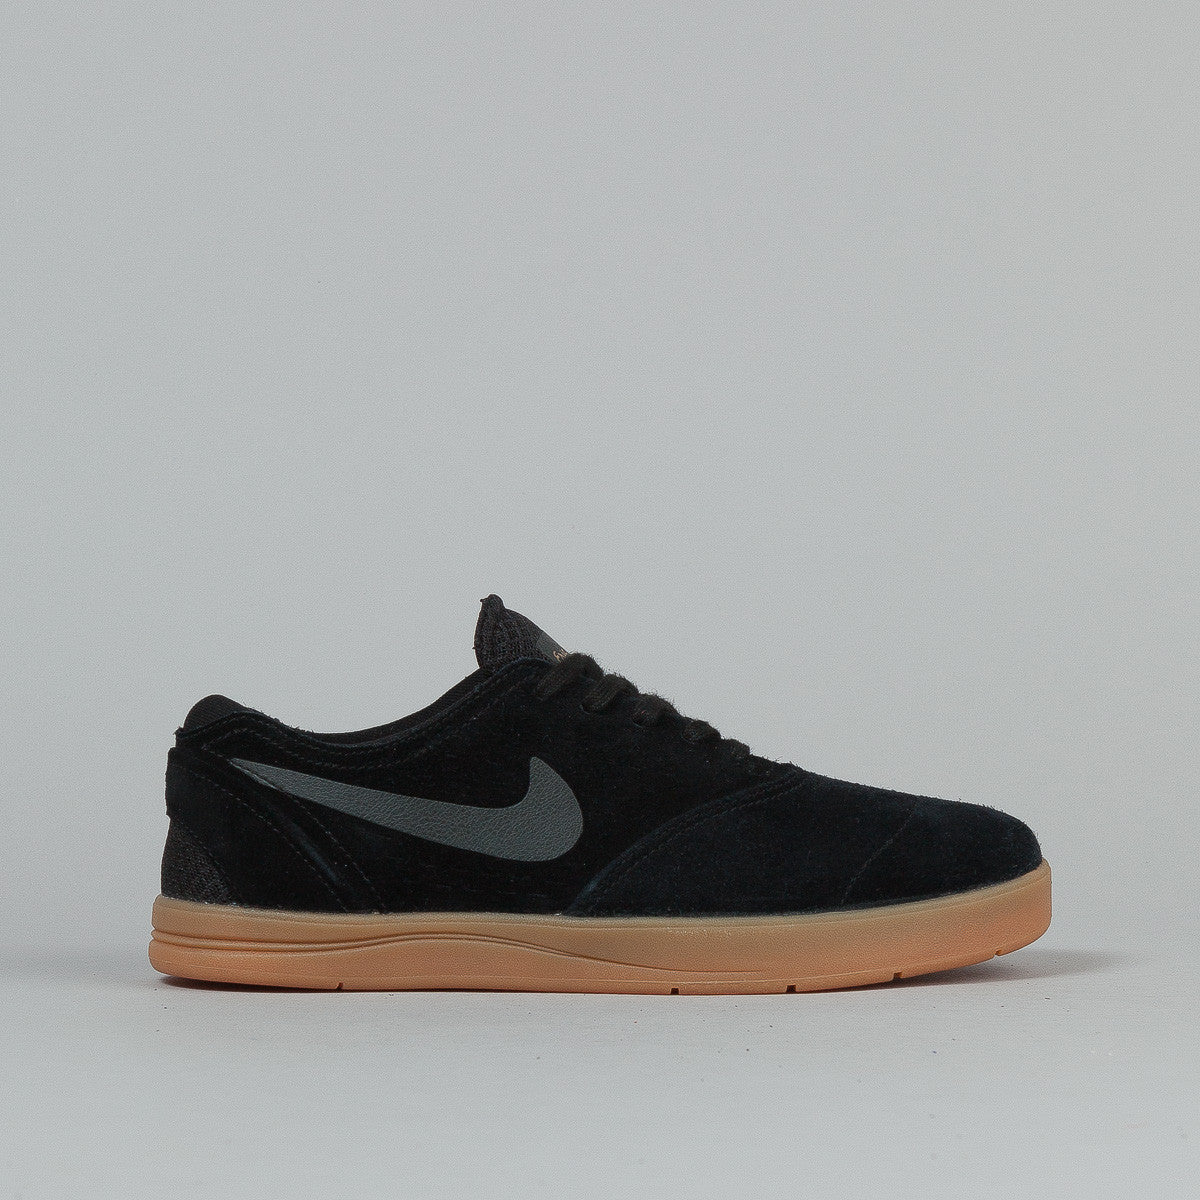 Nike SB Eric Koston 2 Black / Anthracite